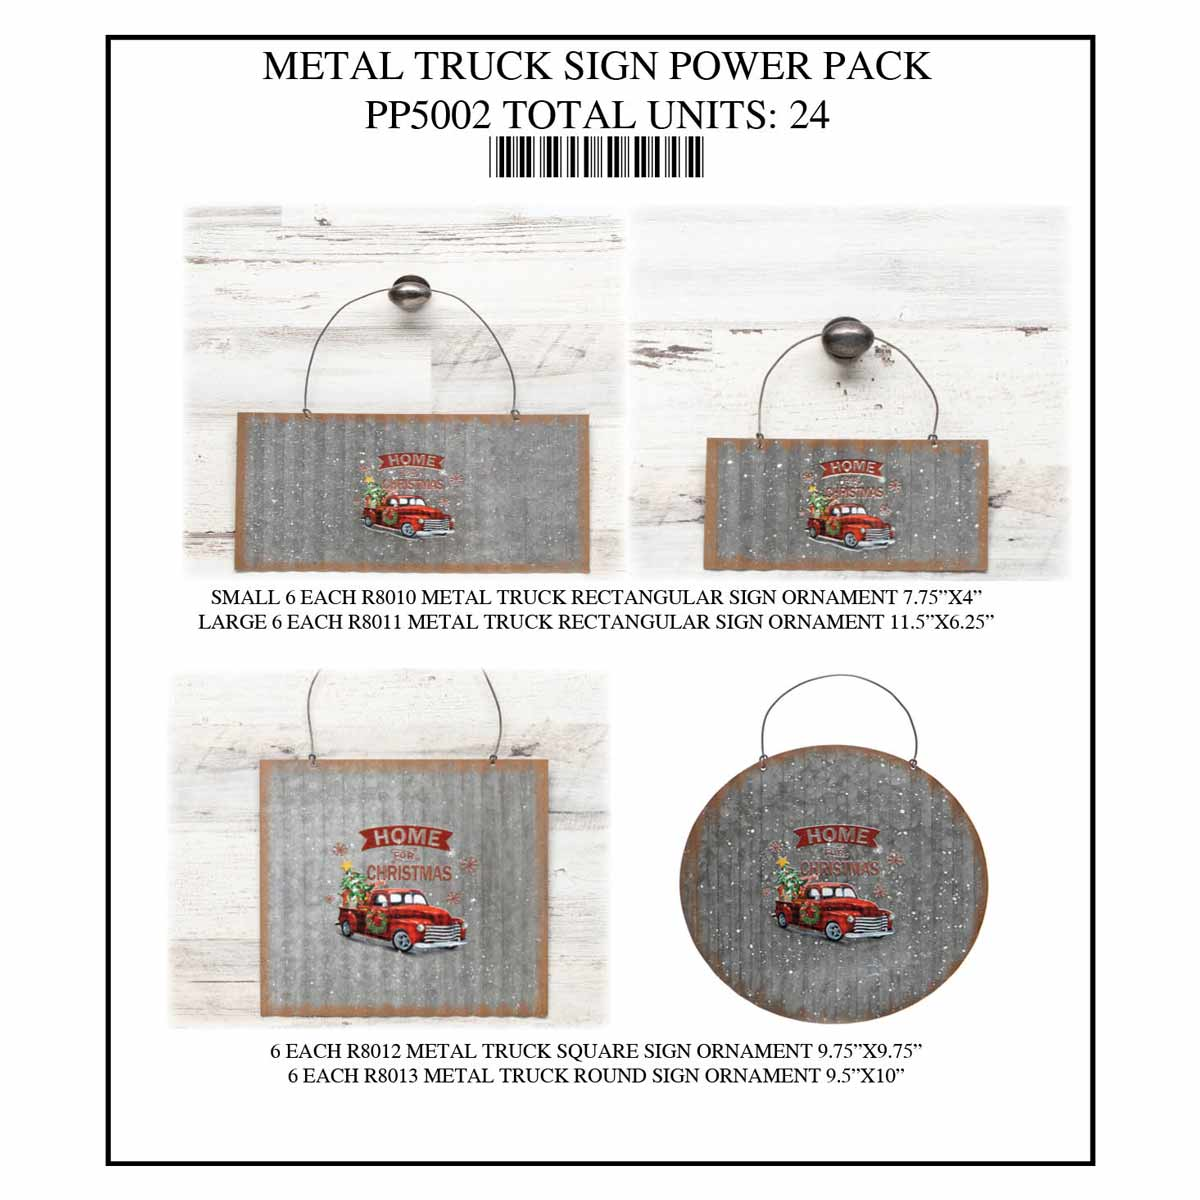 SIGN TRUCK METAL POWER PACK 24 UNITS